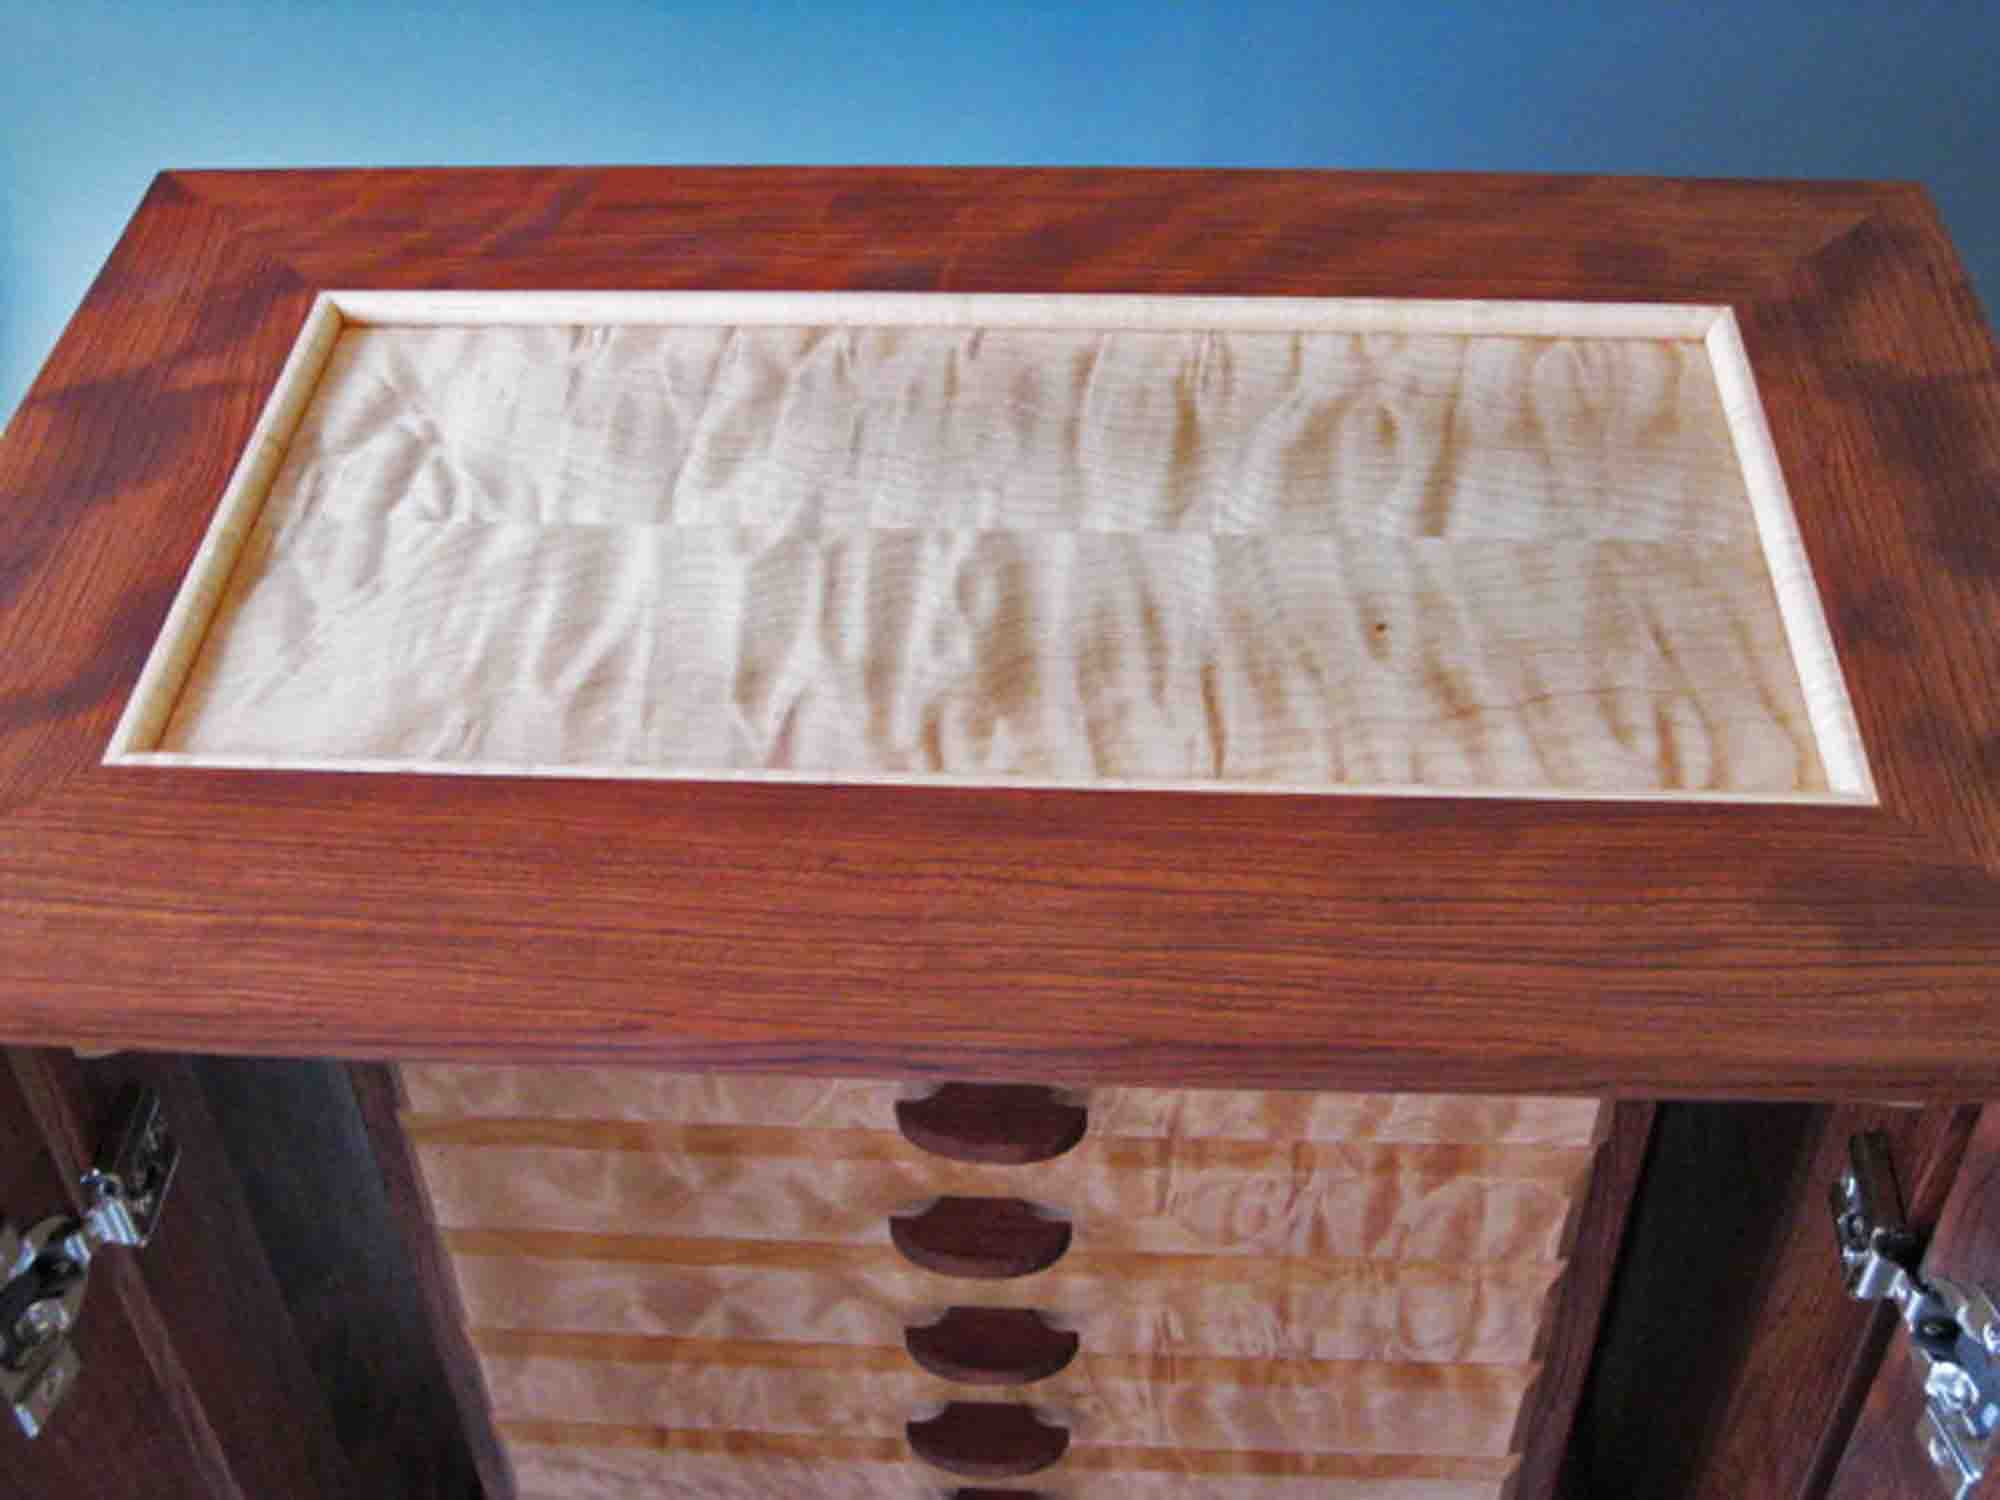 Armoire Jewelry Boxes Handcrafted of Exotic Woods